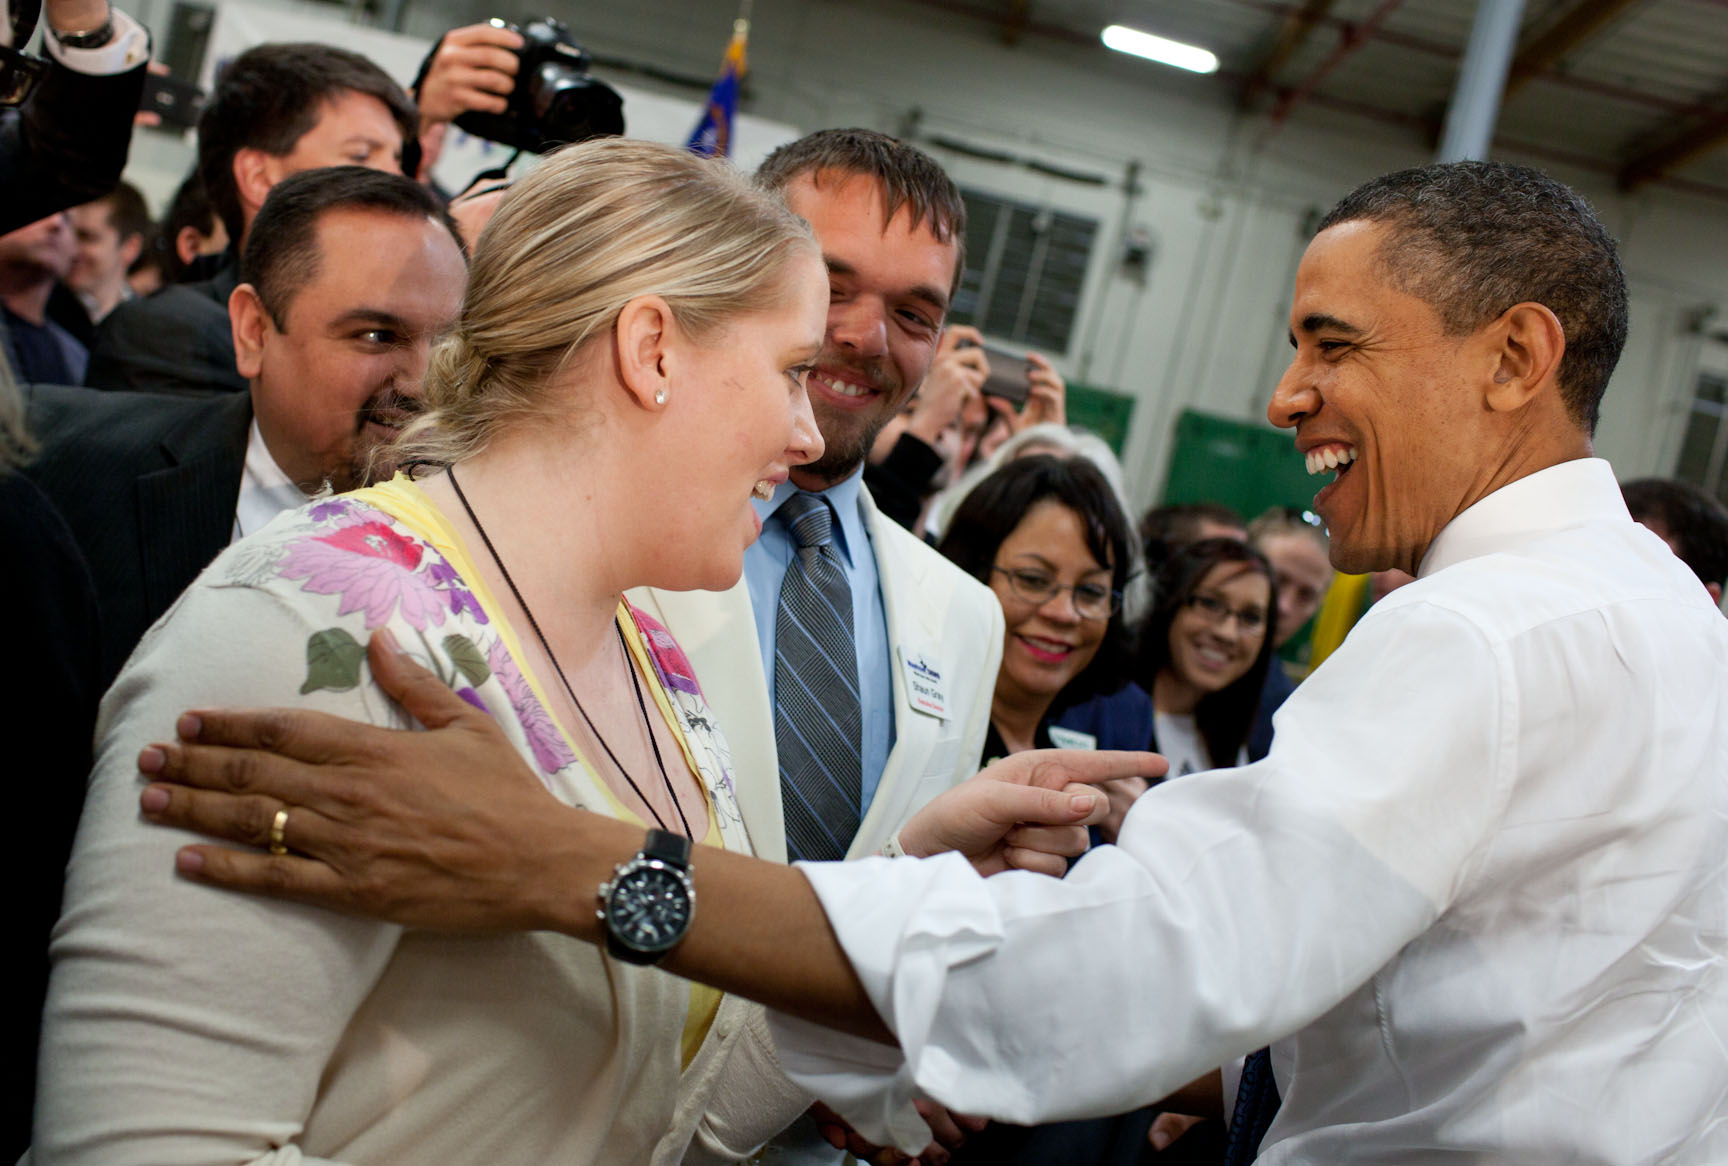 President Barack Obama Speaks with Audience Members at a Town Hall Meeting at ElectraTherm, Inc. in Reno, Nevada